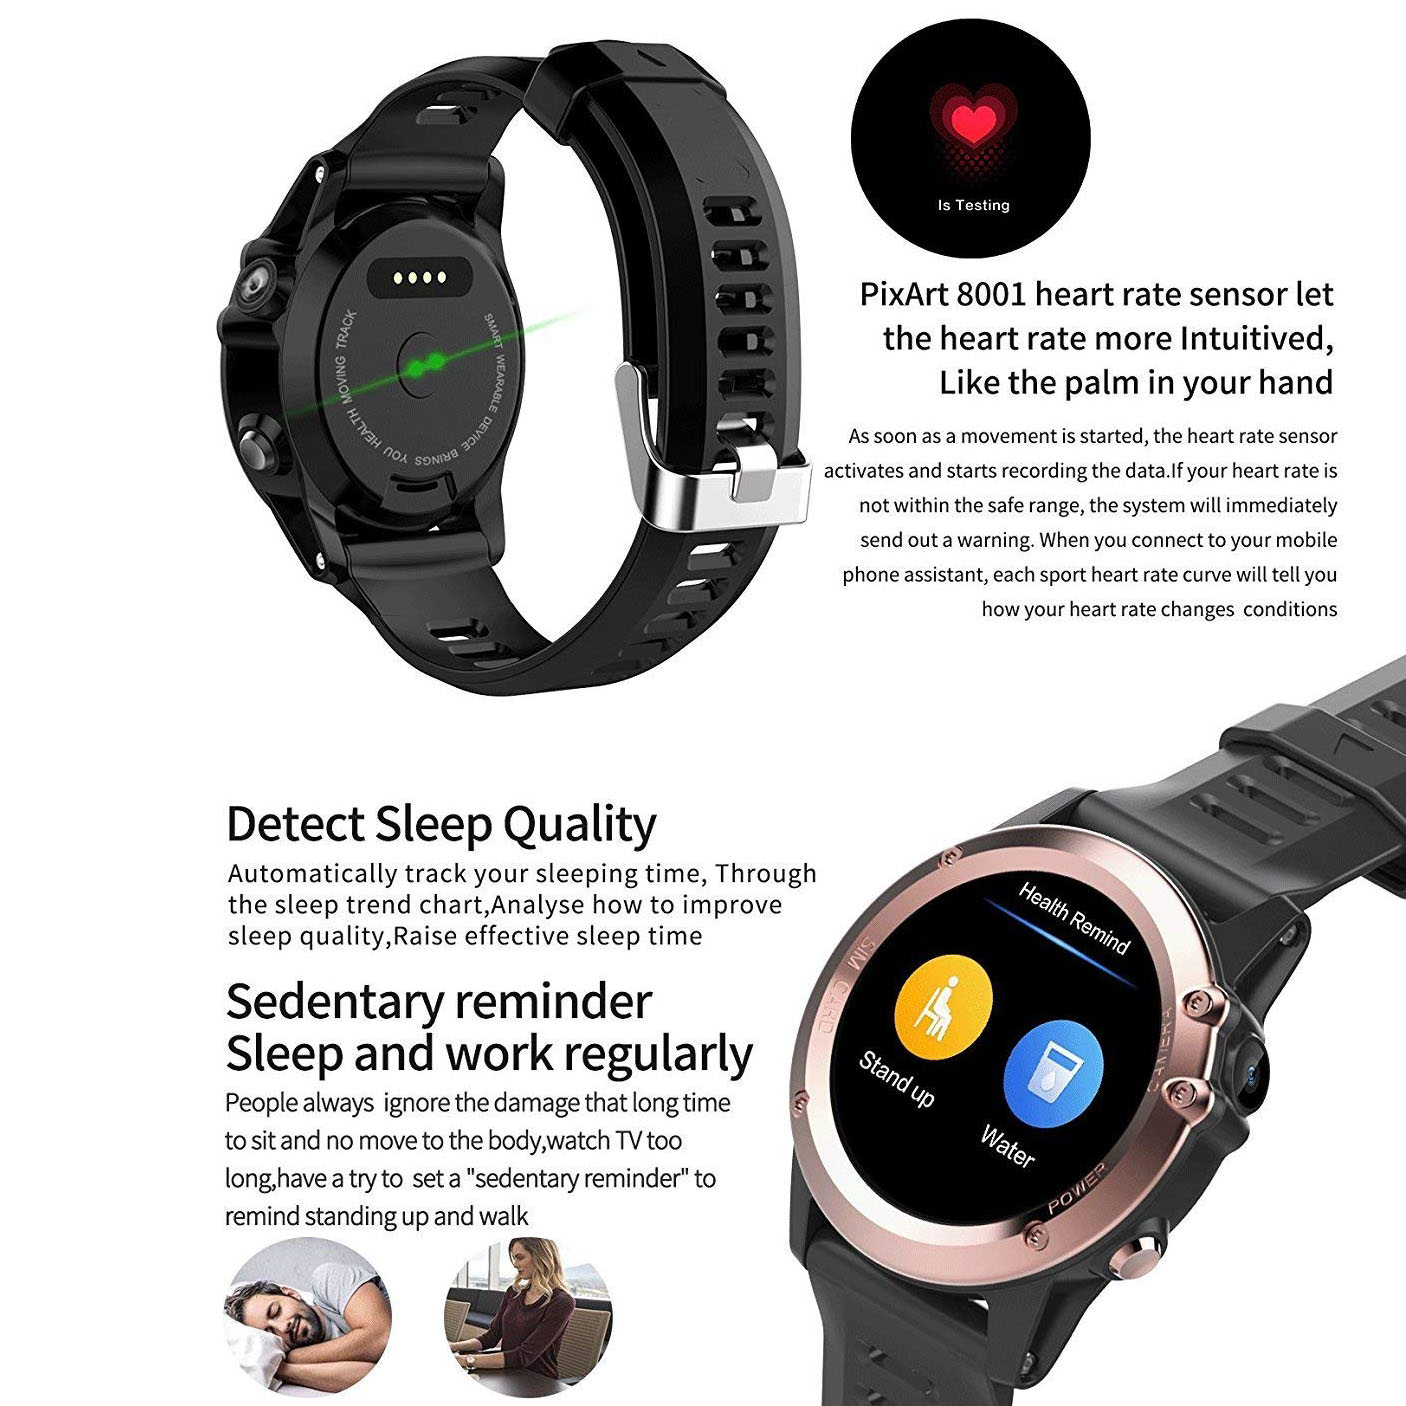 H1 Smart Watch MTK6572 IP68 Waterproof 1 39inch 400400 GPS Wifi 3G Heart  Rate Monitor 4GB+512MB For Android IOS Camera 500W (b